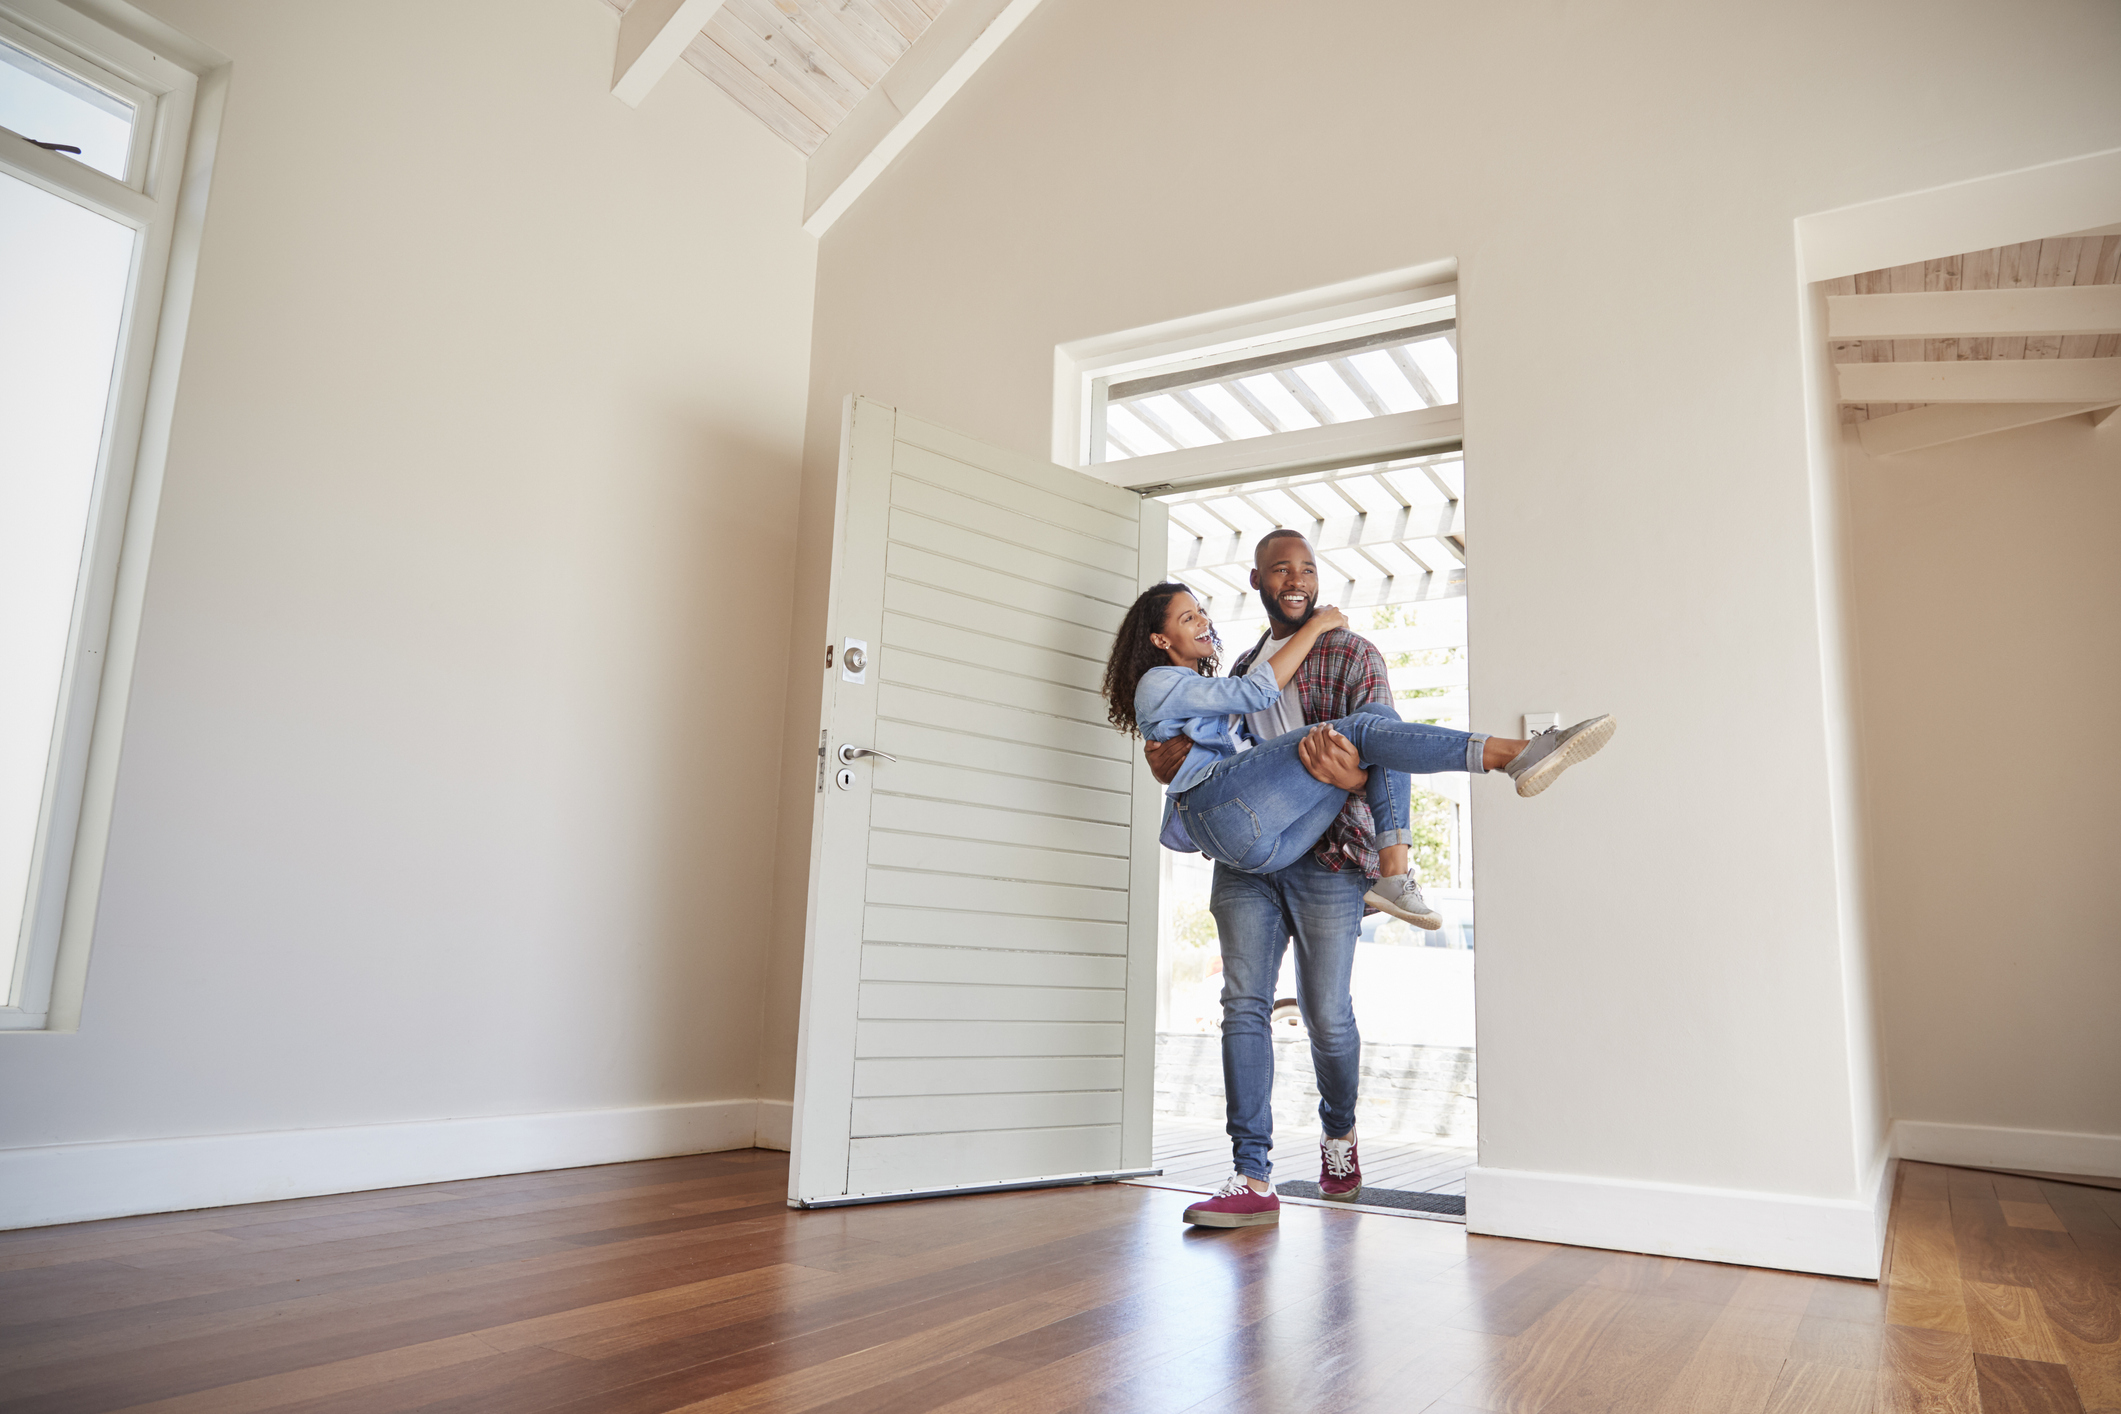 A man carries his wife over the threshold and into their new home.